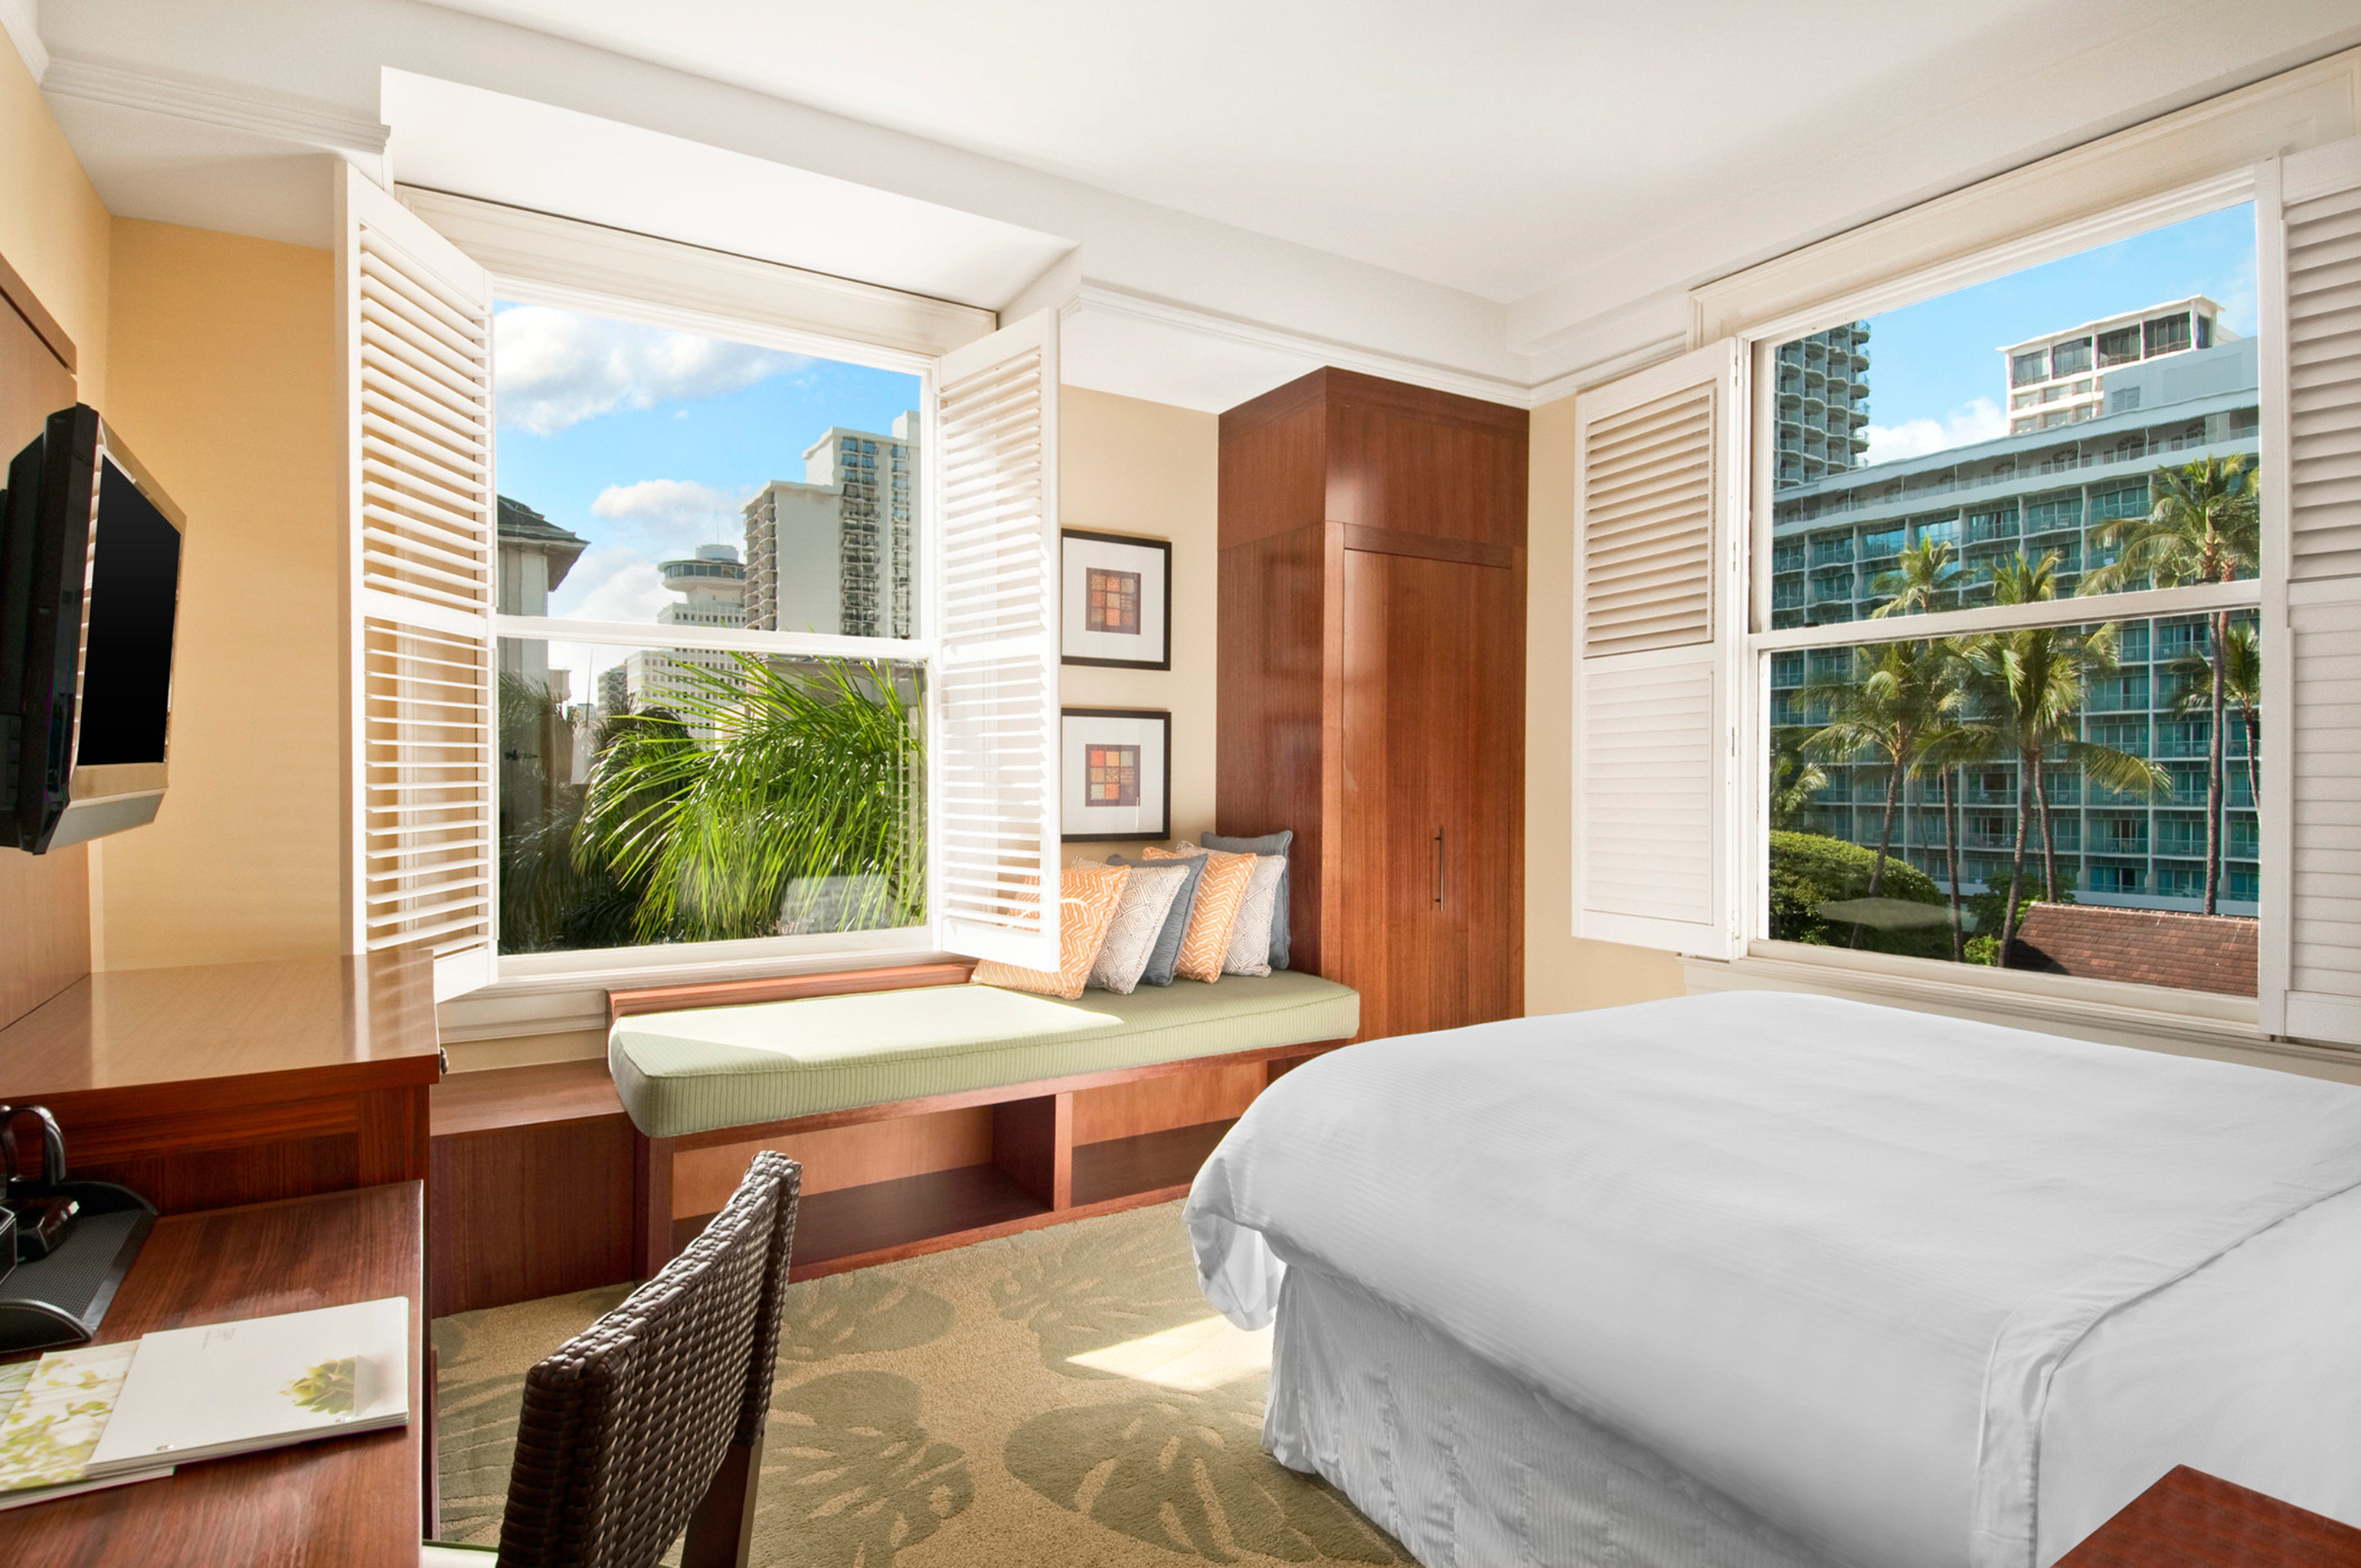 Bedroom Boutique Hotels Classic Hawaii Honolulu Hotels Living Resort Scenic views indoor window floor room wall bed property ceiling condominium estate home real estate interior design living room Suite window covering hotel cottage apartment Villa furniture Modern decorated